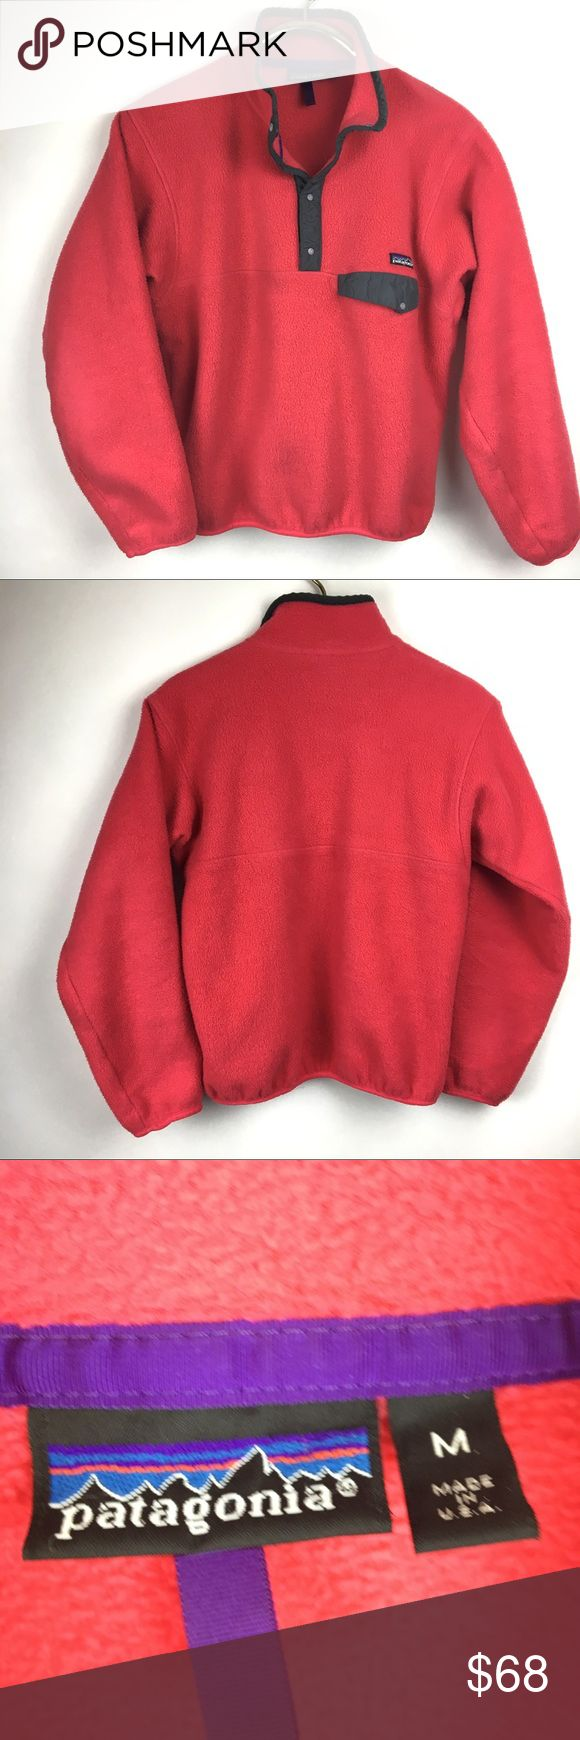 """Patagonia Synchilla Snap Pullover Patagonia Women's Lightweight Synchilla Snap-T Pullover is a midweight fleece for warmth in cool weather. The 100% polyester is soft and classic, with a stand-up collar to warm the neck.  *4-button placket for aiding in quick temperature  *Nylon trim on stand-up collar reinforces classic Snap-T 4-snap placket * pocket at chest with snap closure  Made in USA  Appoximate measurements:  Sleeve 22..5"""" Shoulder to hem 23"""" Armpit x armpit 20.5"""" Patagonia Tops…"""